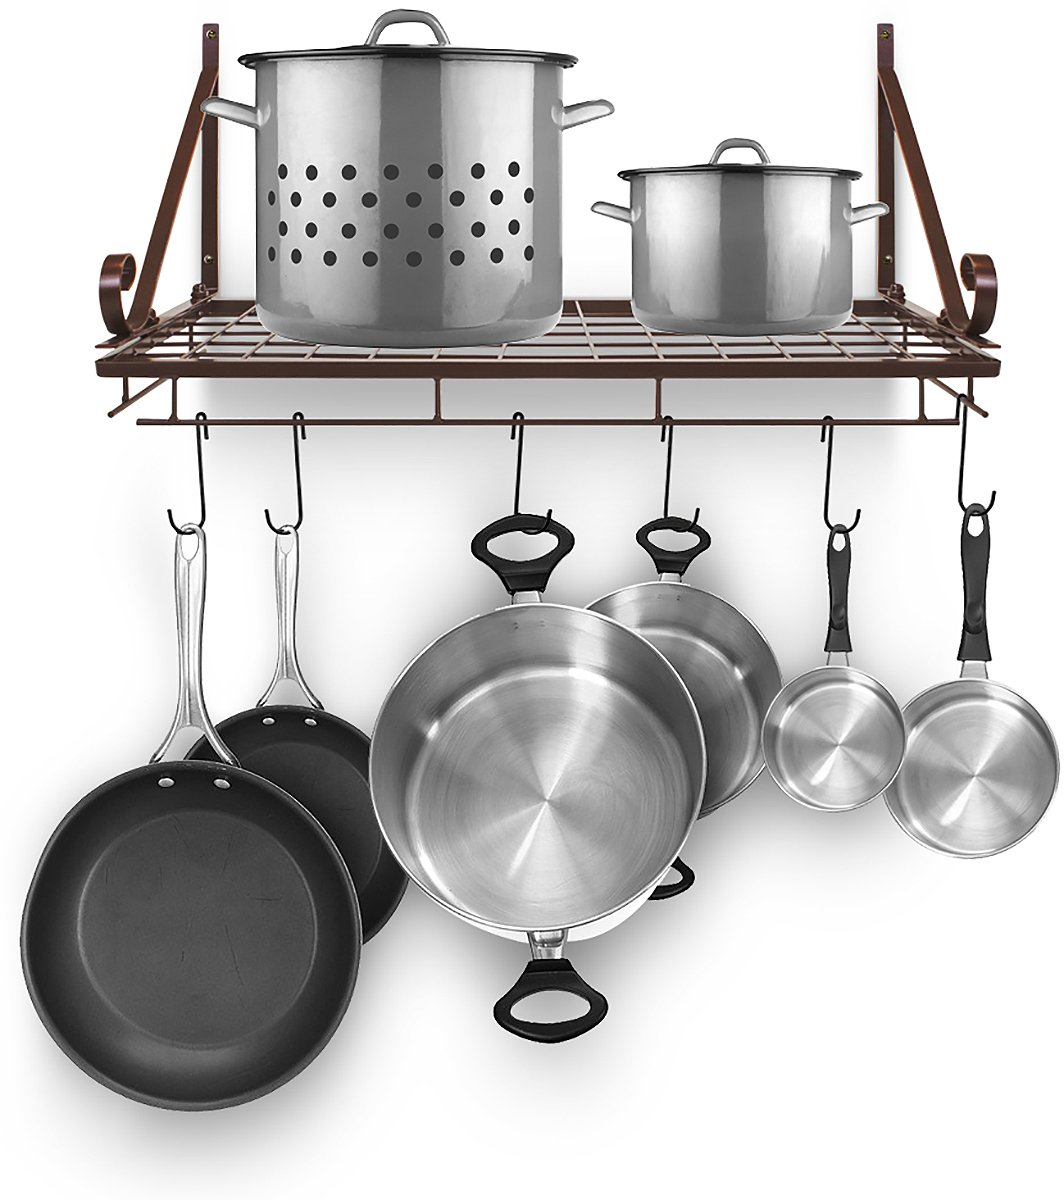 Sorbus Pots and Pan Rack — Decorative Wall Mounted Storage Hanging Rack — Multipurpose Wrought-Iron shelf Organizer for Kitchen Cookware, Utensils, Pans, Books, Bathroom (Wall Rack - Bronze) by Sorbus (Image #1)